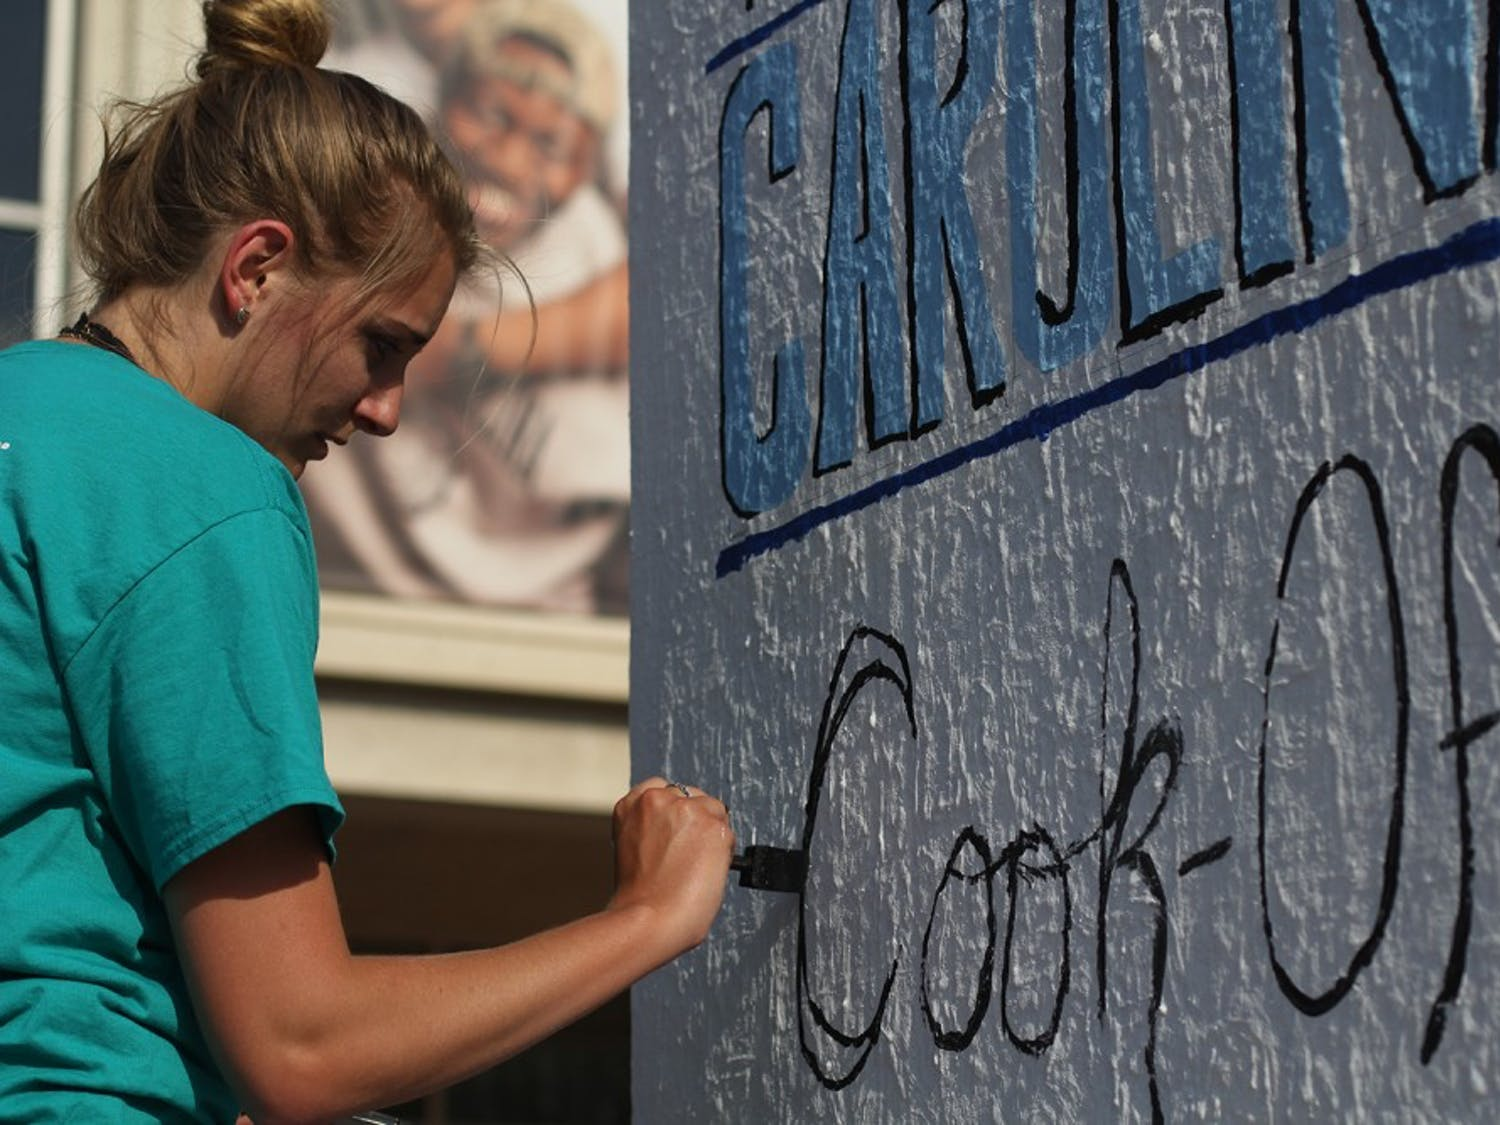 Kristen Wagner, the co-chair of the event, paints on one of the blocks in the pit in hopes of publicizing for the The Great Carolina Cook-Off.